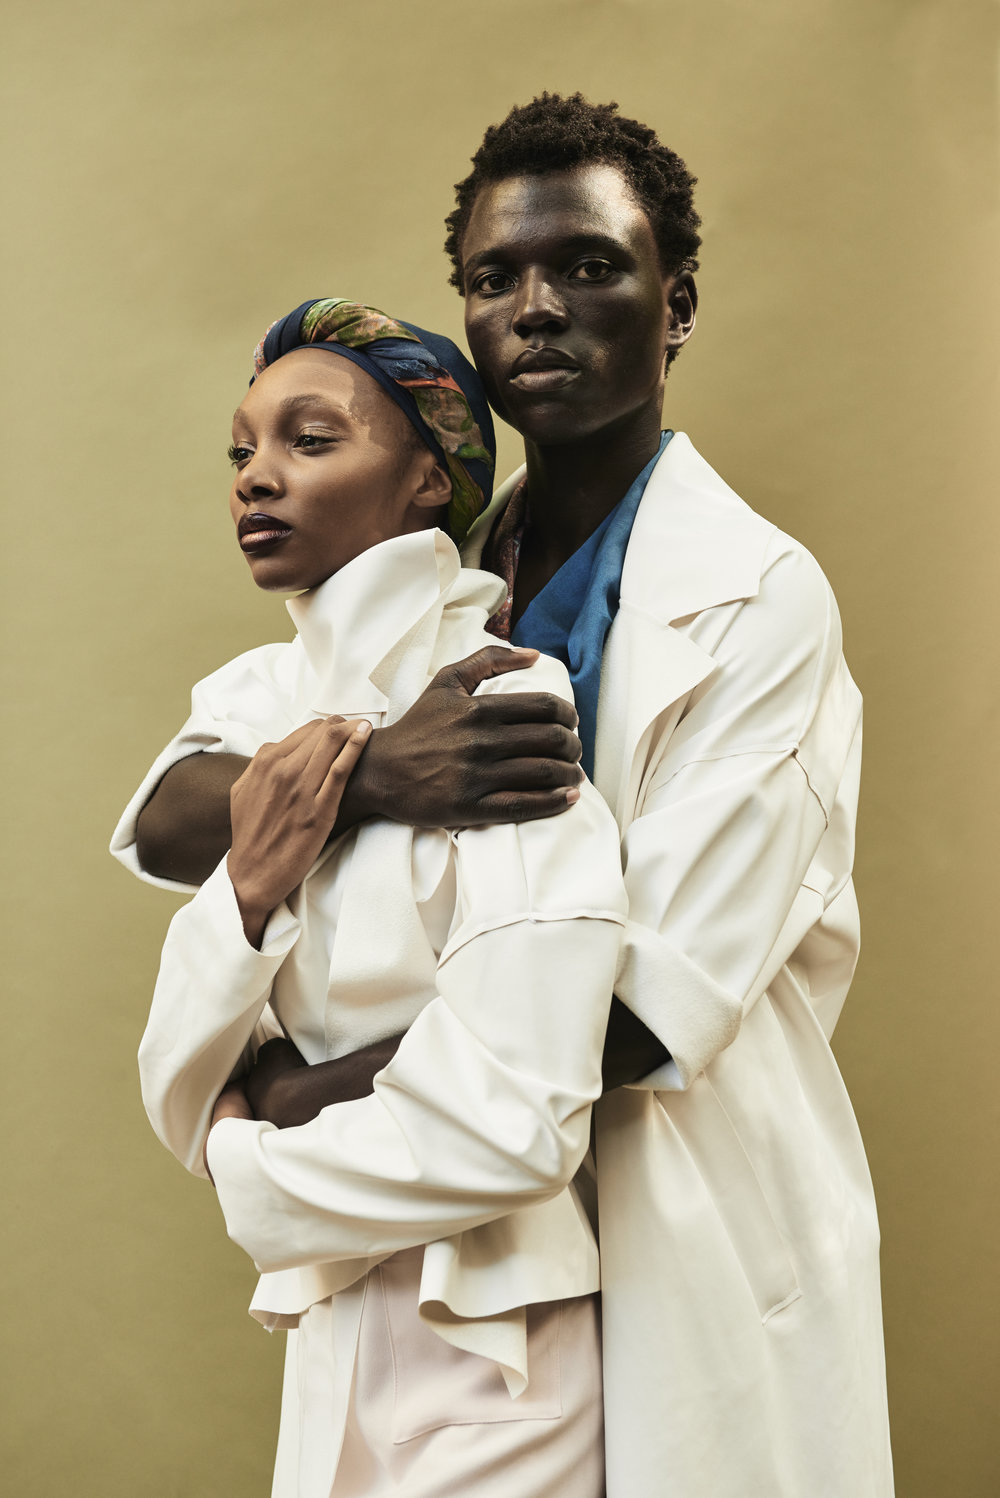 Photography: Timothy Smith - Styling: Paix Robinson - Hair/Makeup: Jake Aebly - Models: Yanii Gough & George Afrekh